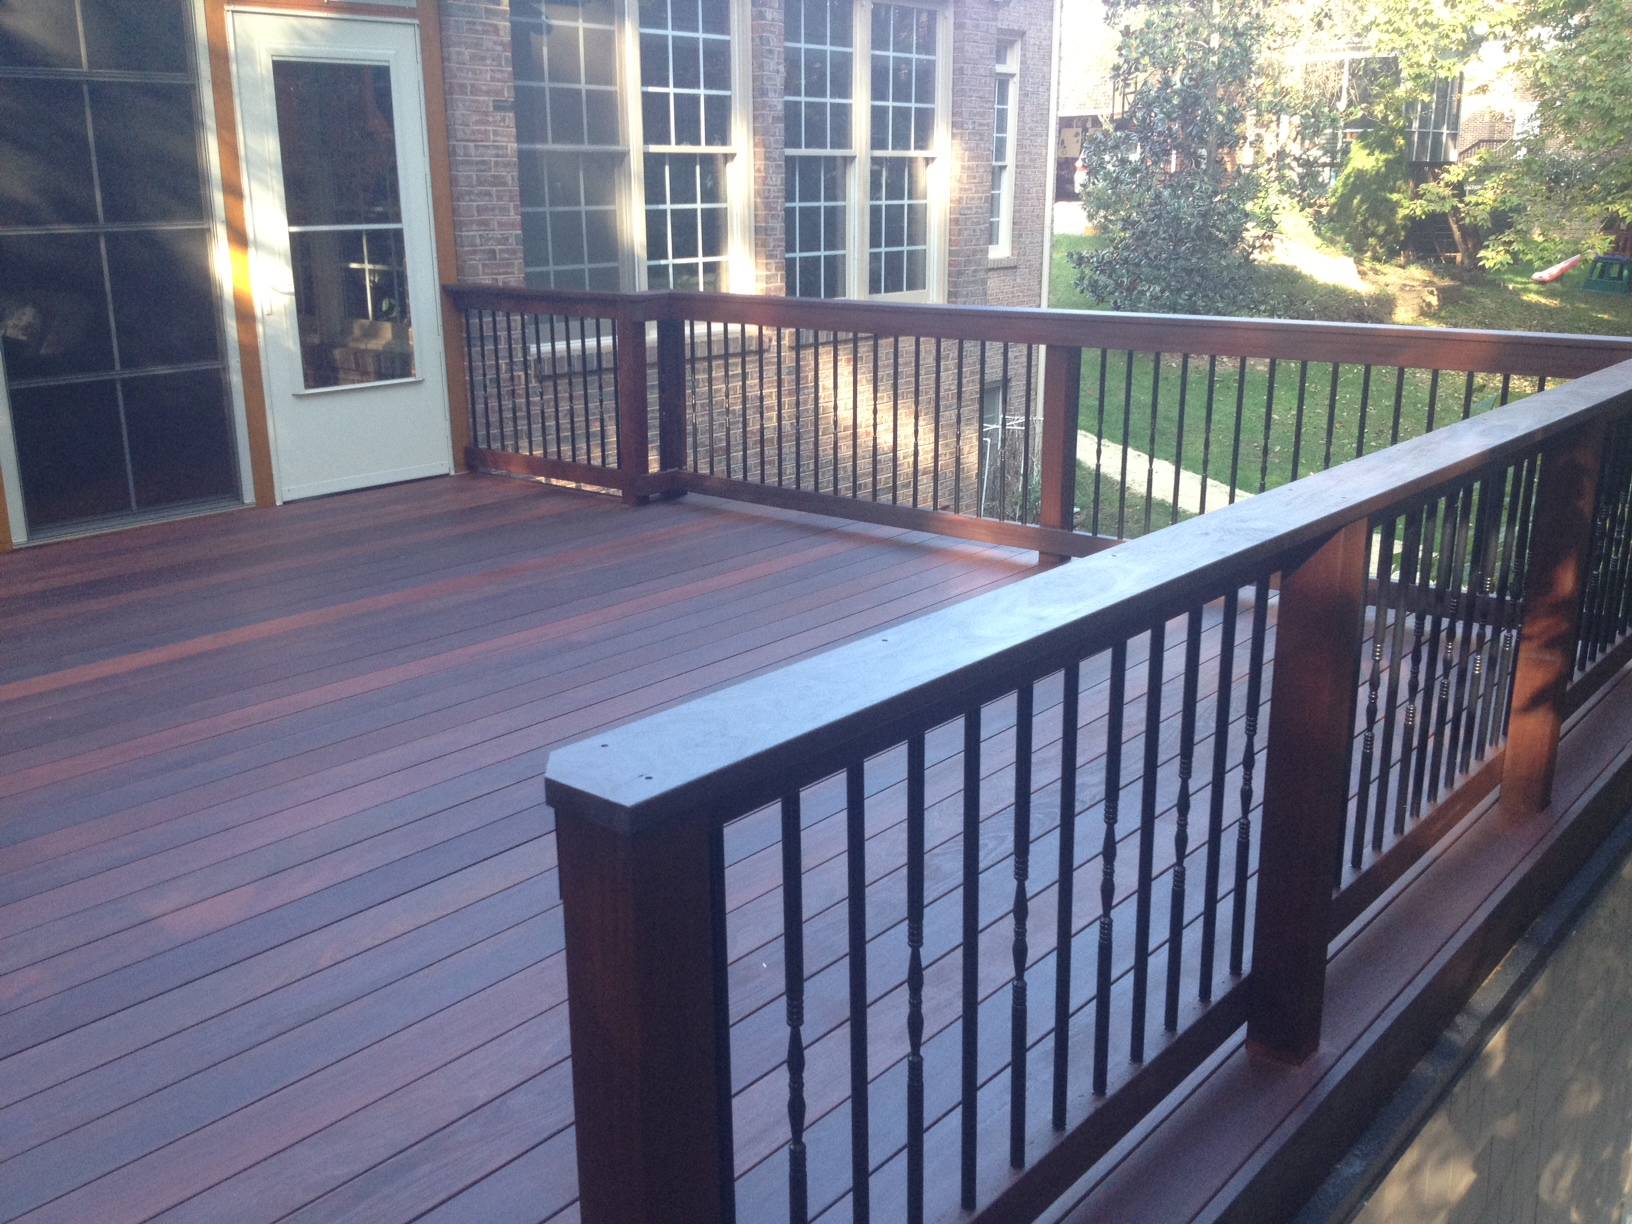 Ipe Brazilian Hardwood Decking Is Becoming Popular For Lake Wylie Decks